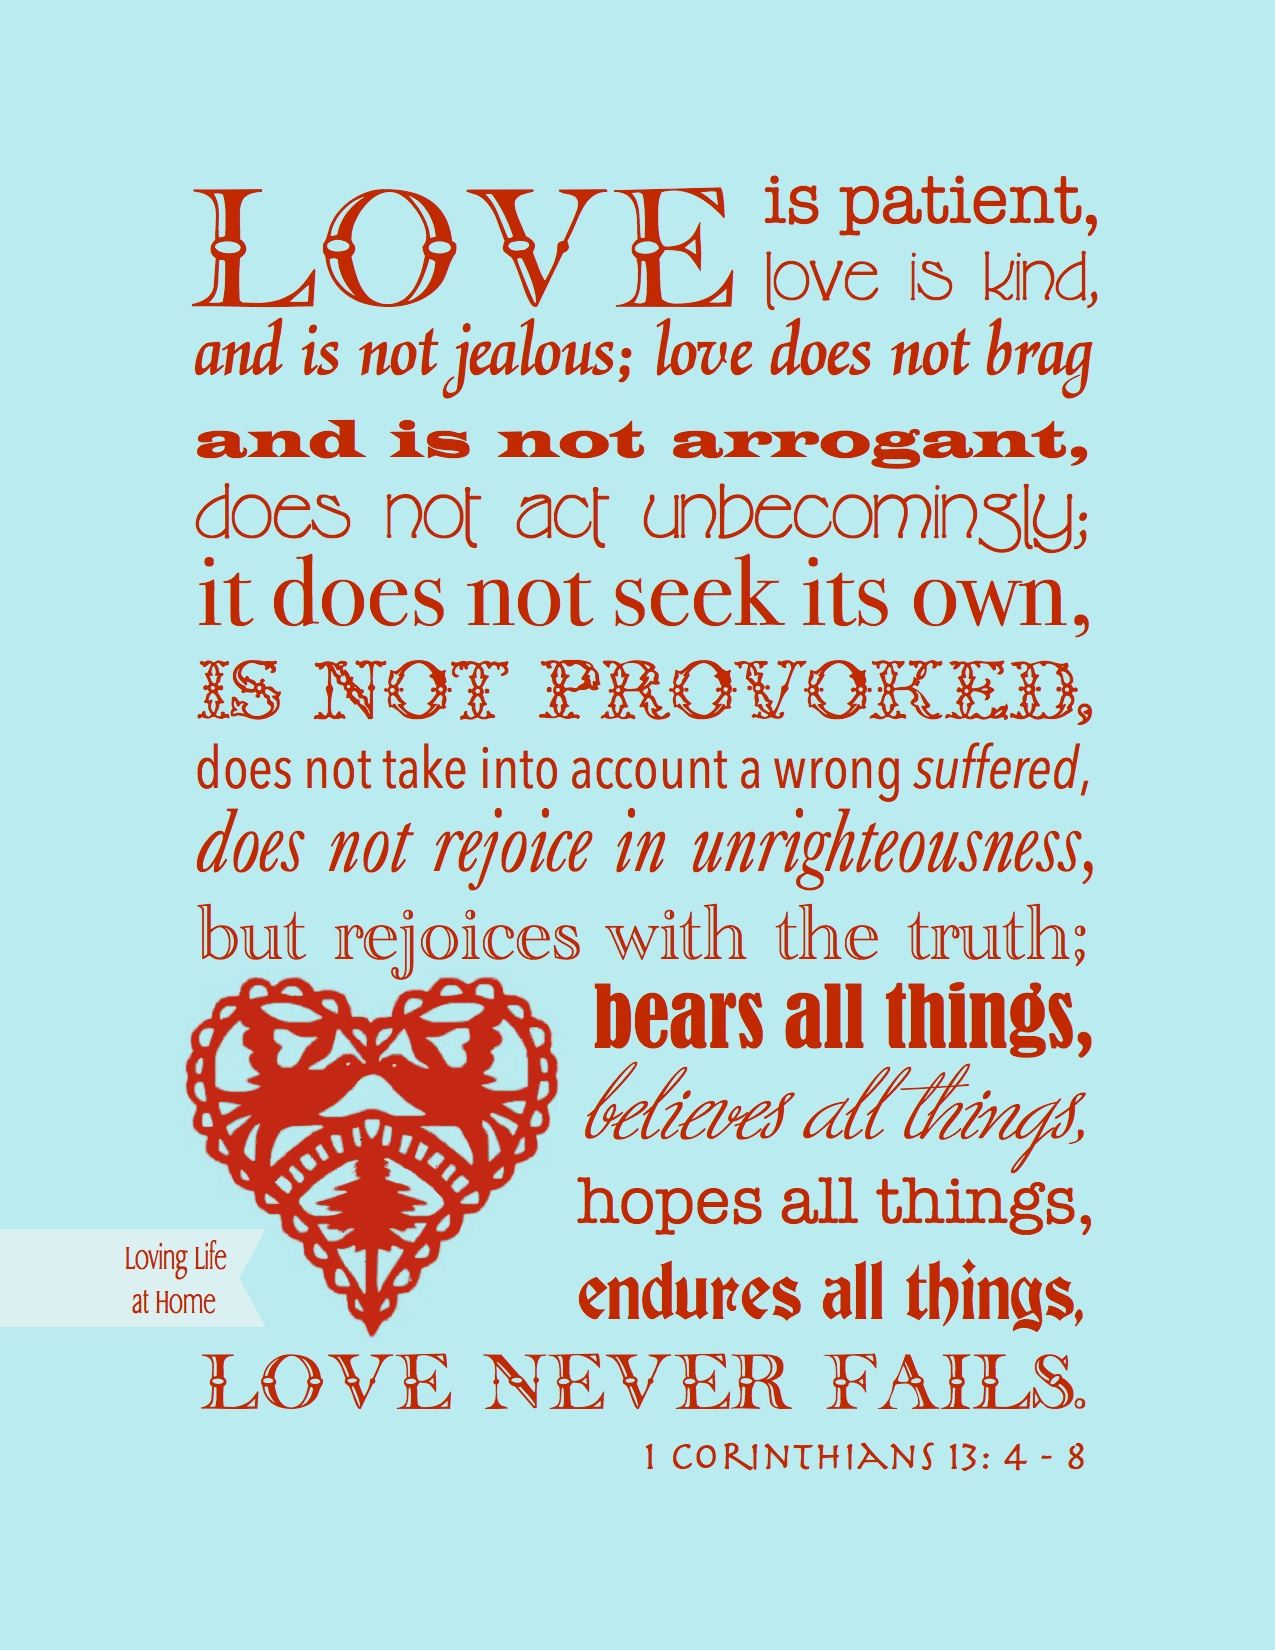 Free printable copy of 1 Corinthians 13 in a selection of different color schemes | www.flandersfamily.info